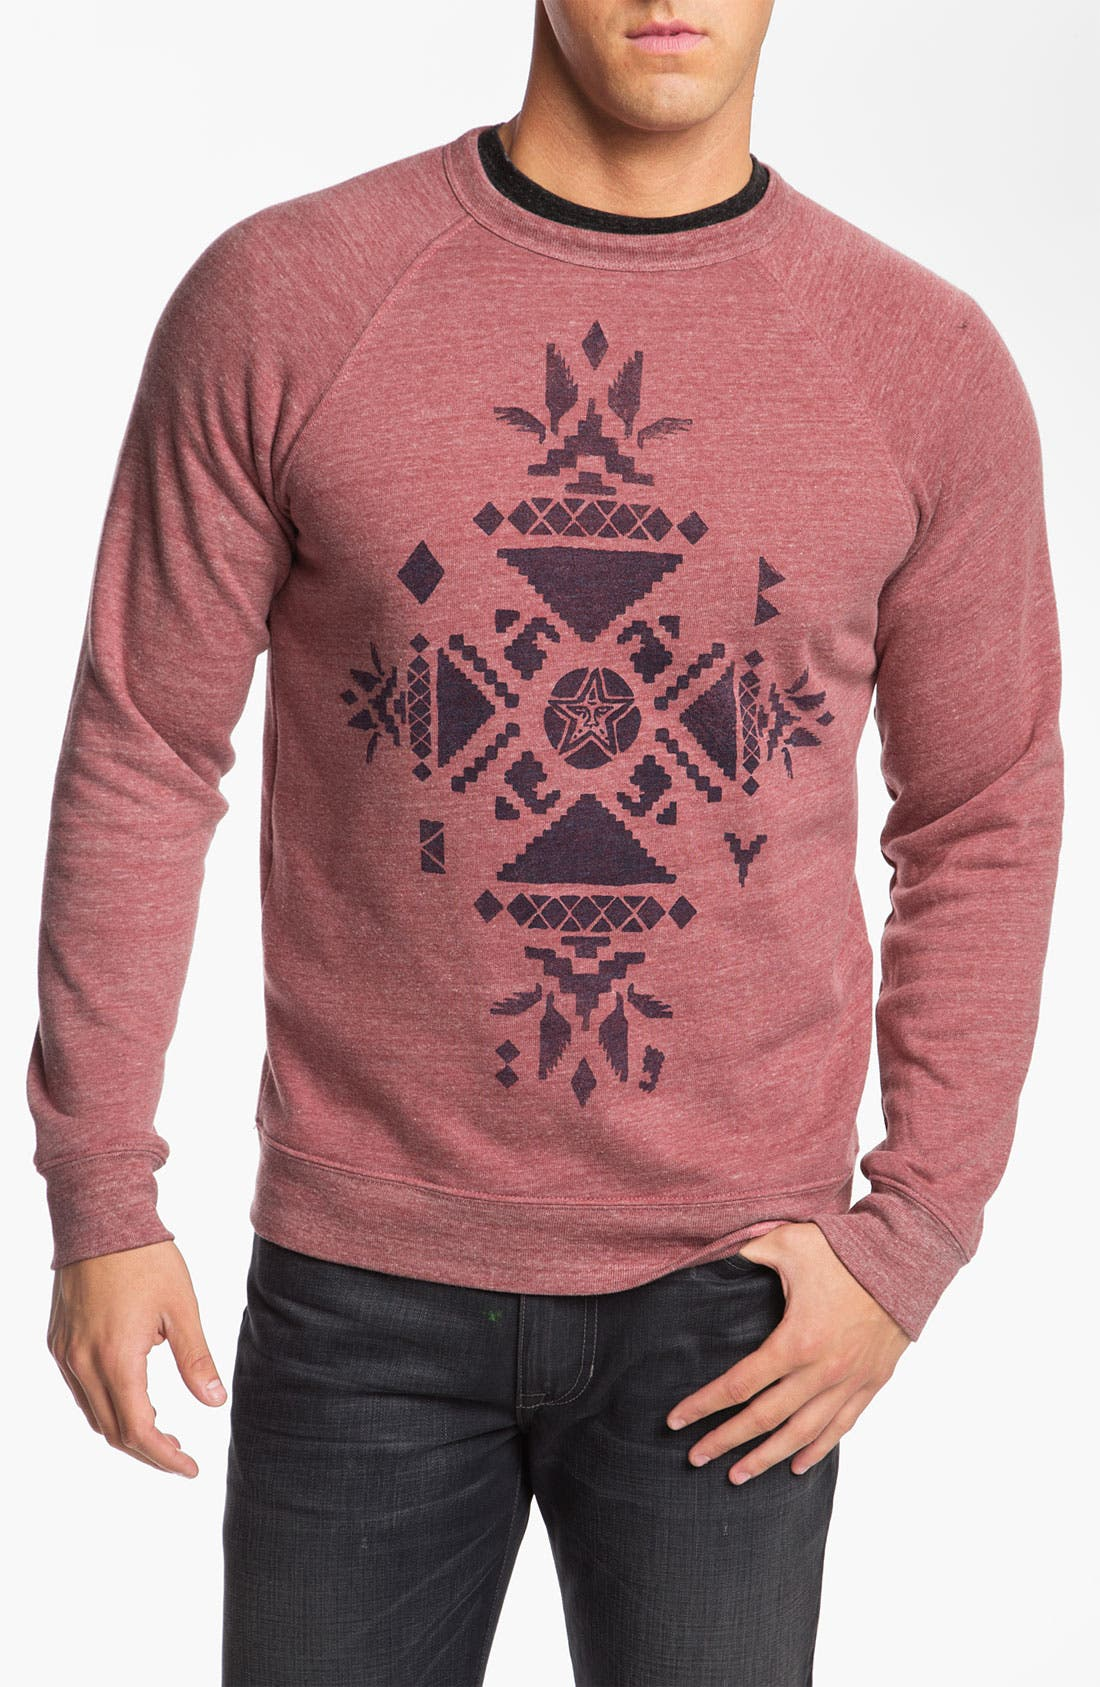 Alternate Image 1 Selected - Obey 'Desert Star' Graphic Crewneck Sweatshirt